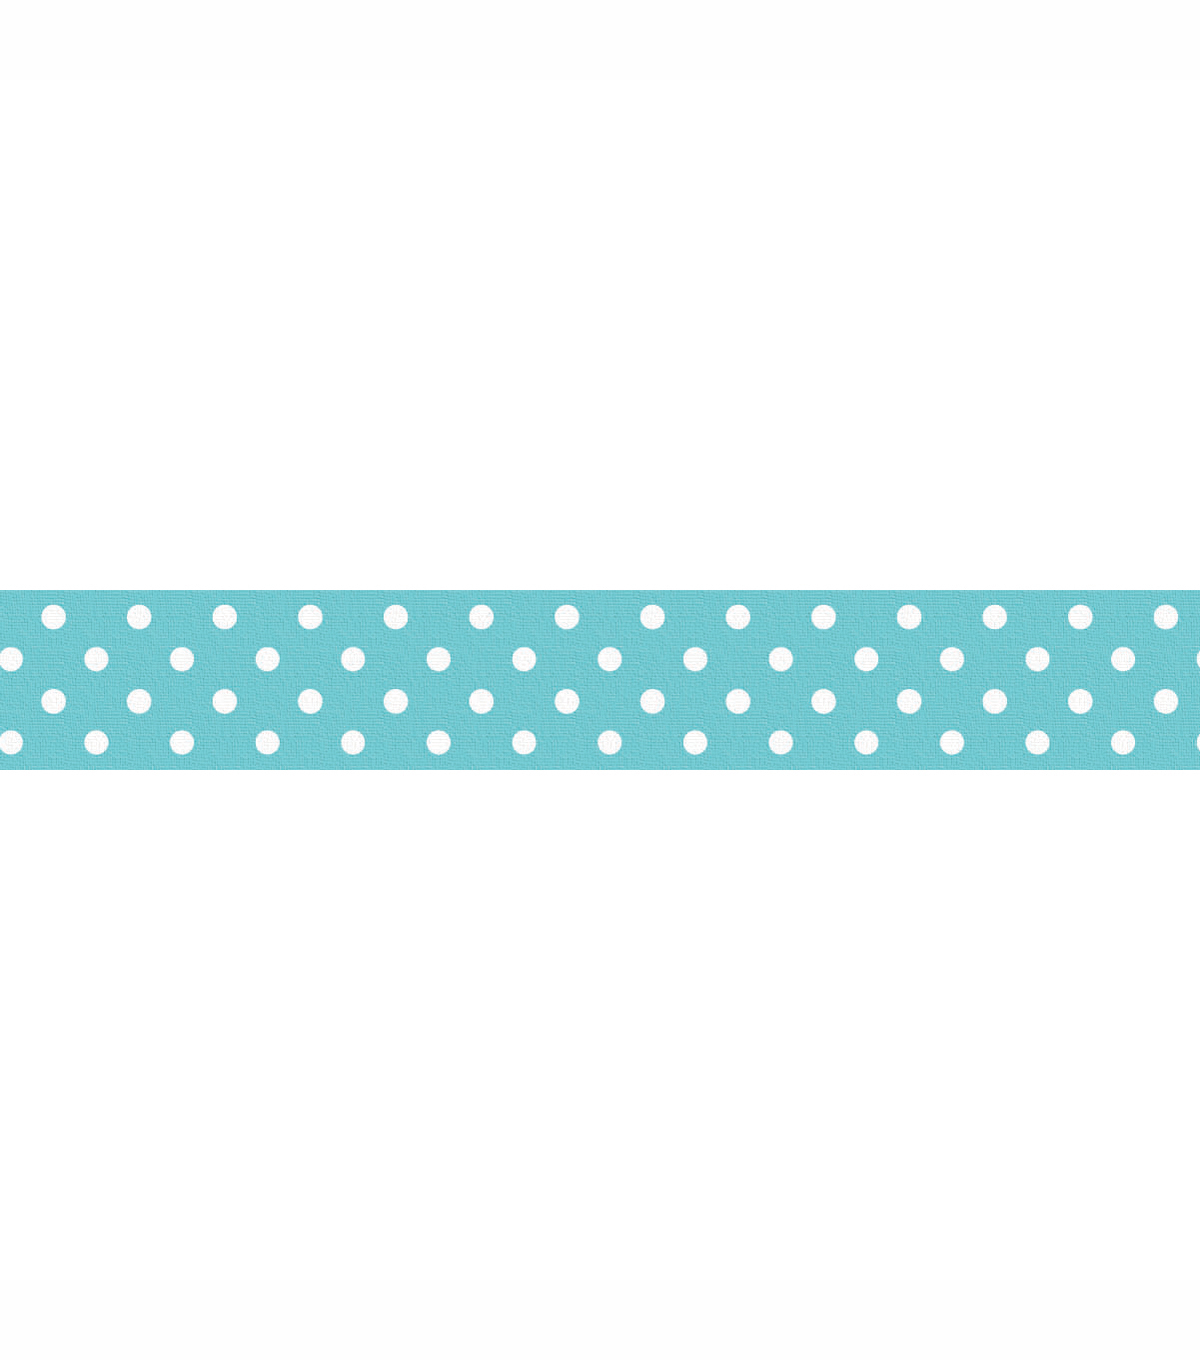 Washi Tape 15mm 12 Yards/Roll-Swimming Pool Swiss Dot